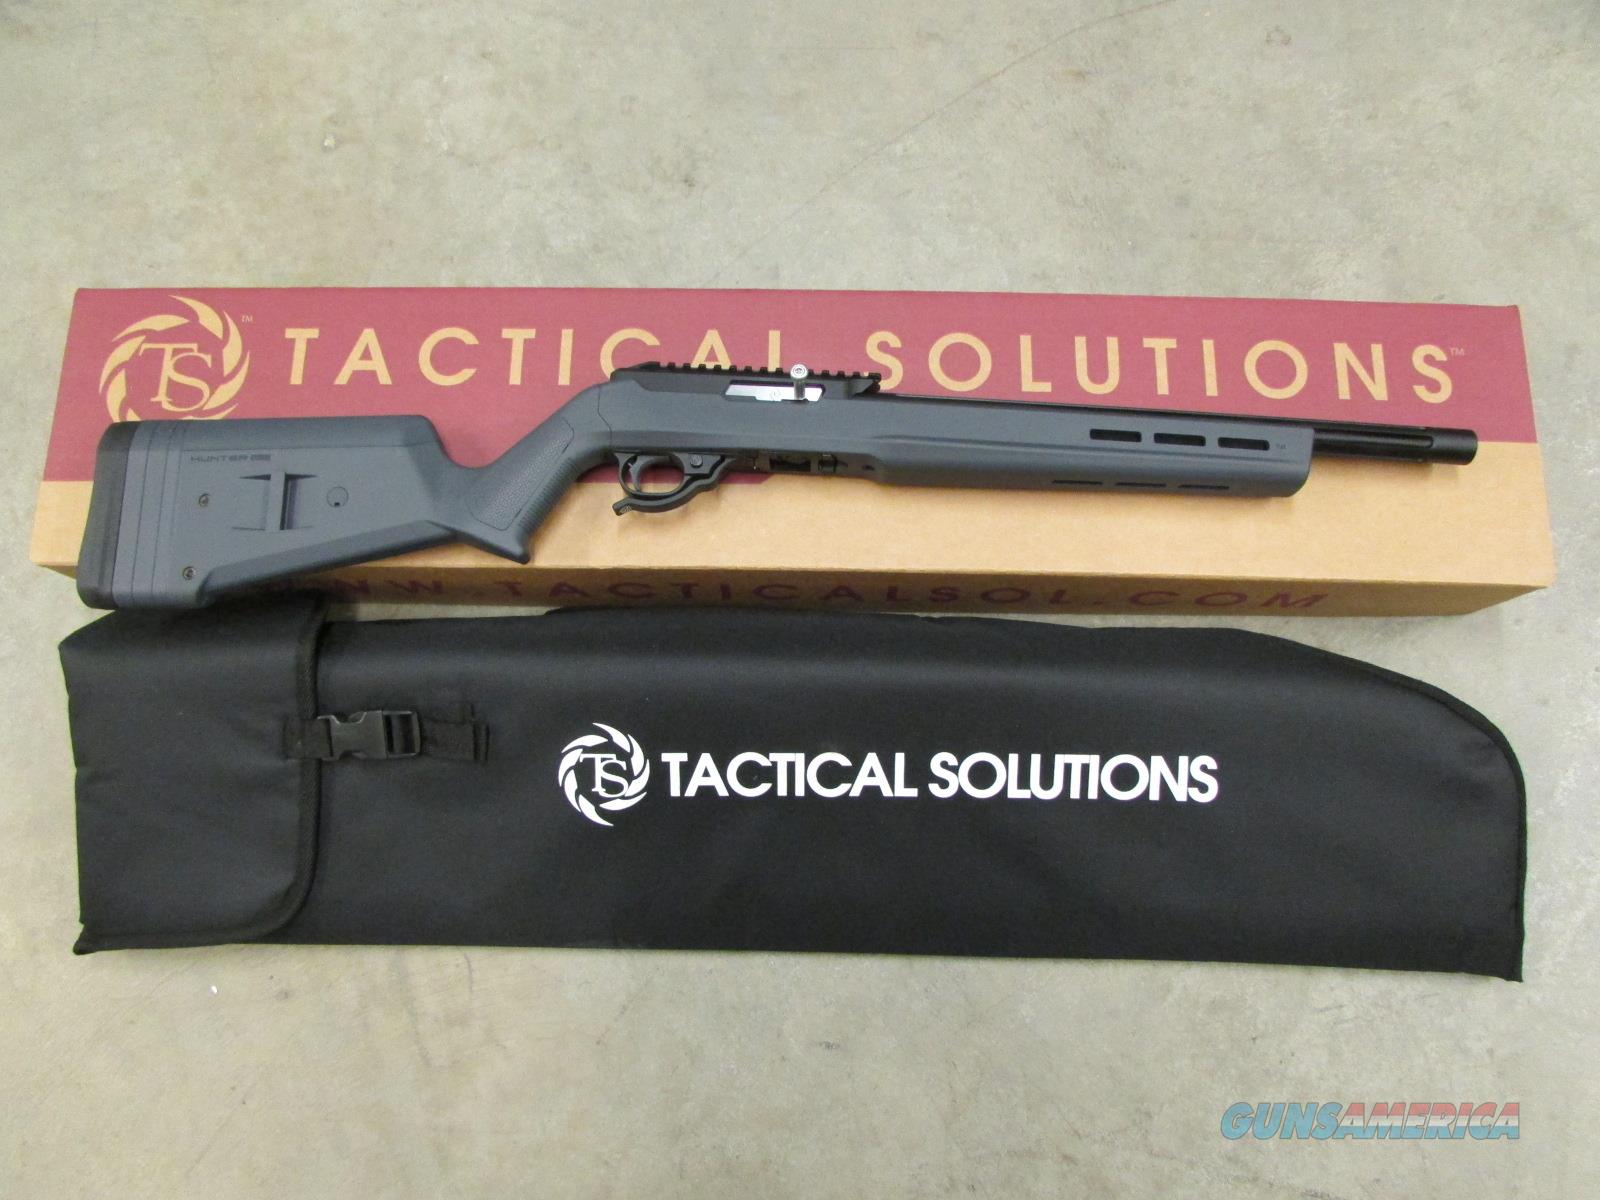 TACTICAL SOLUTIONS X-RING RIFLE MAGPUL HUNTER X-22 BLACK / STEALTH GRAY .22 LR 10/22 TE-MB-B-M-GRY  Guns > Rifles > Ruger Rifles > 10-22